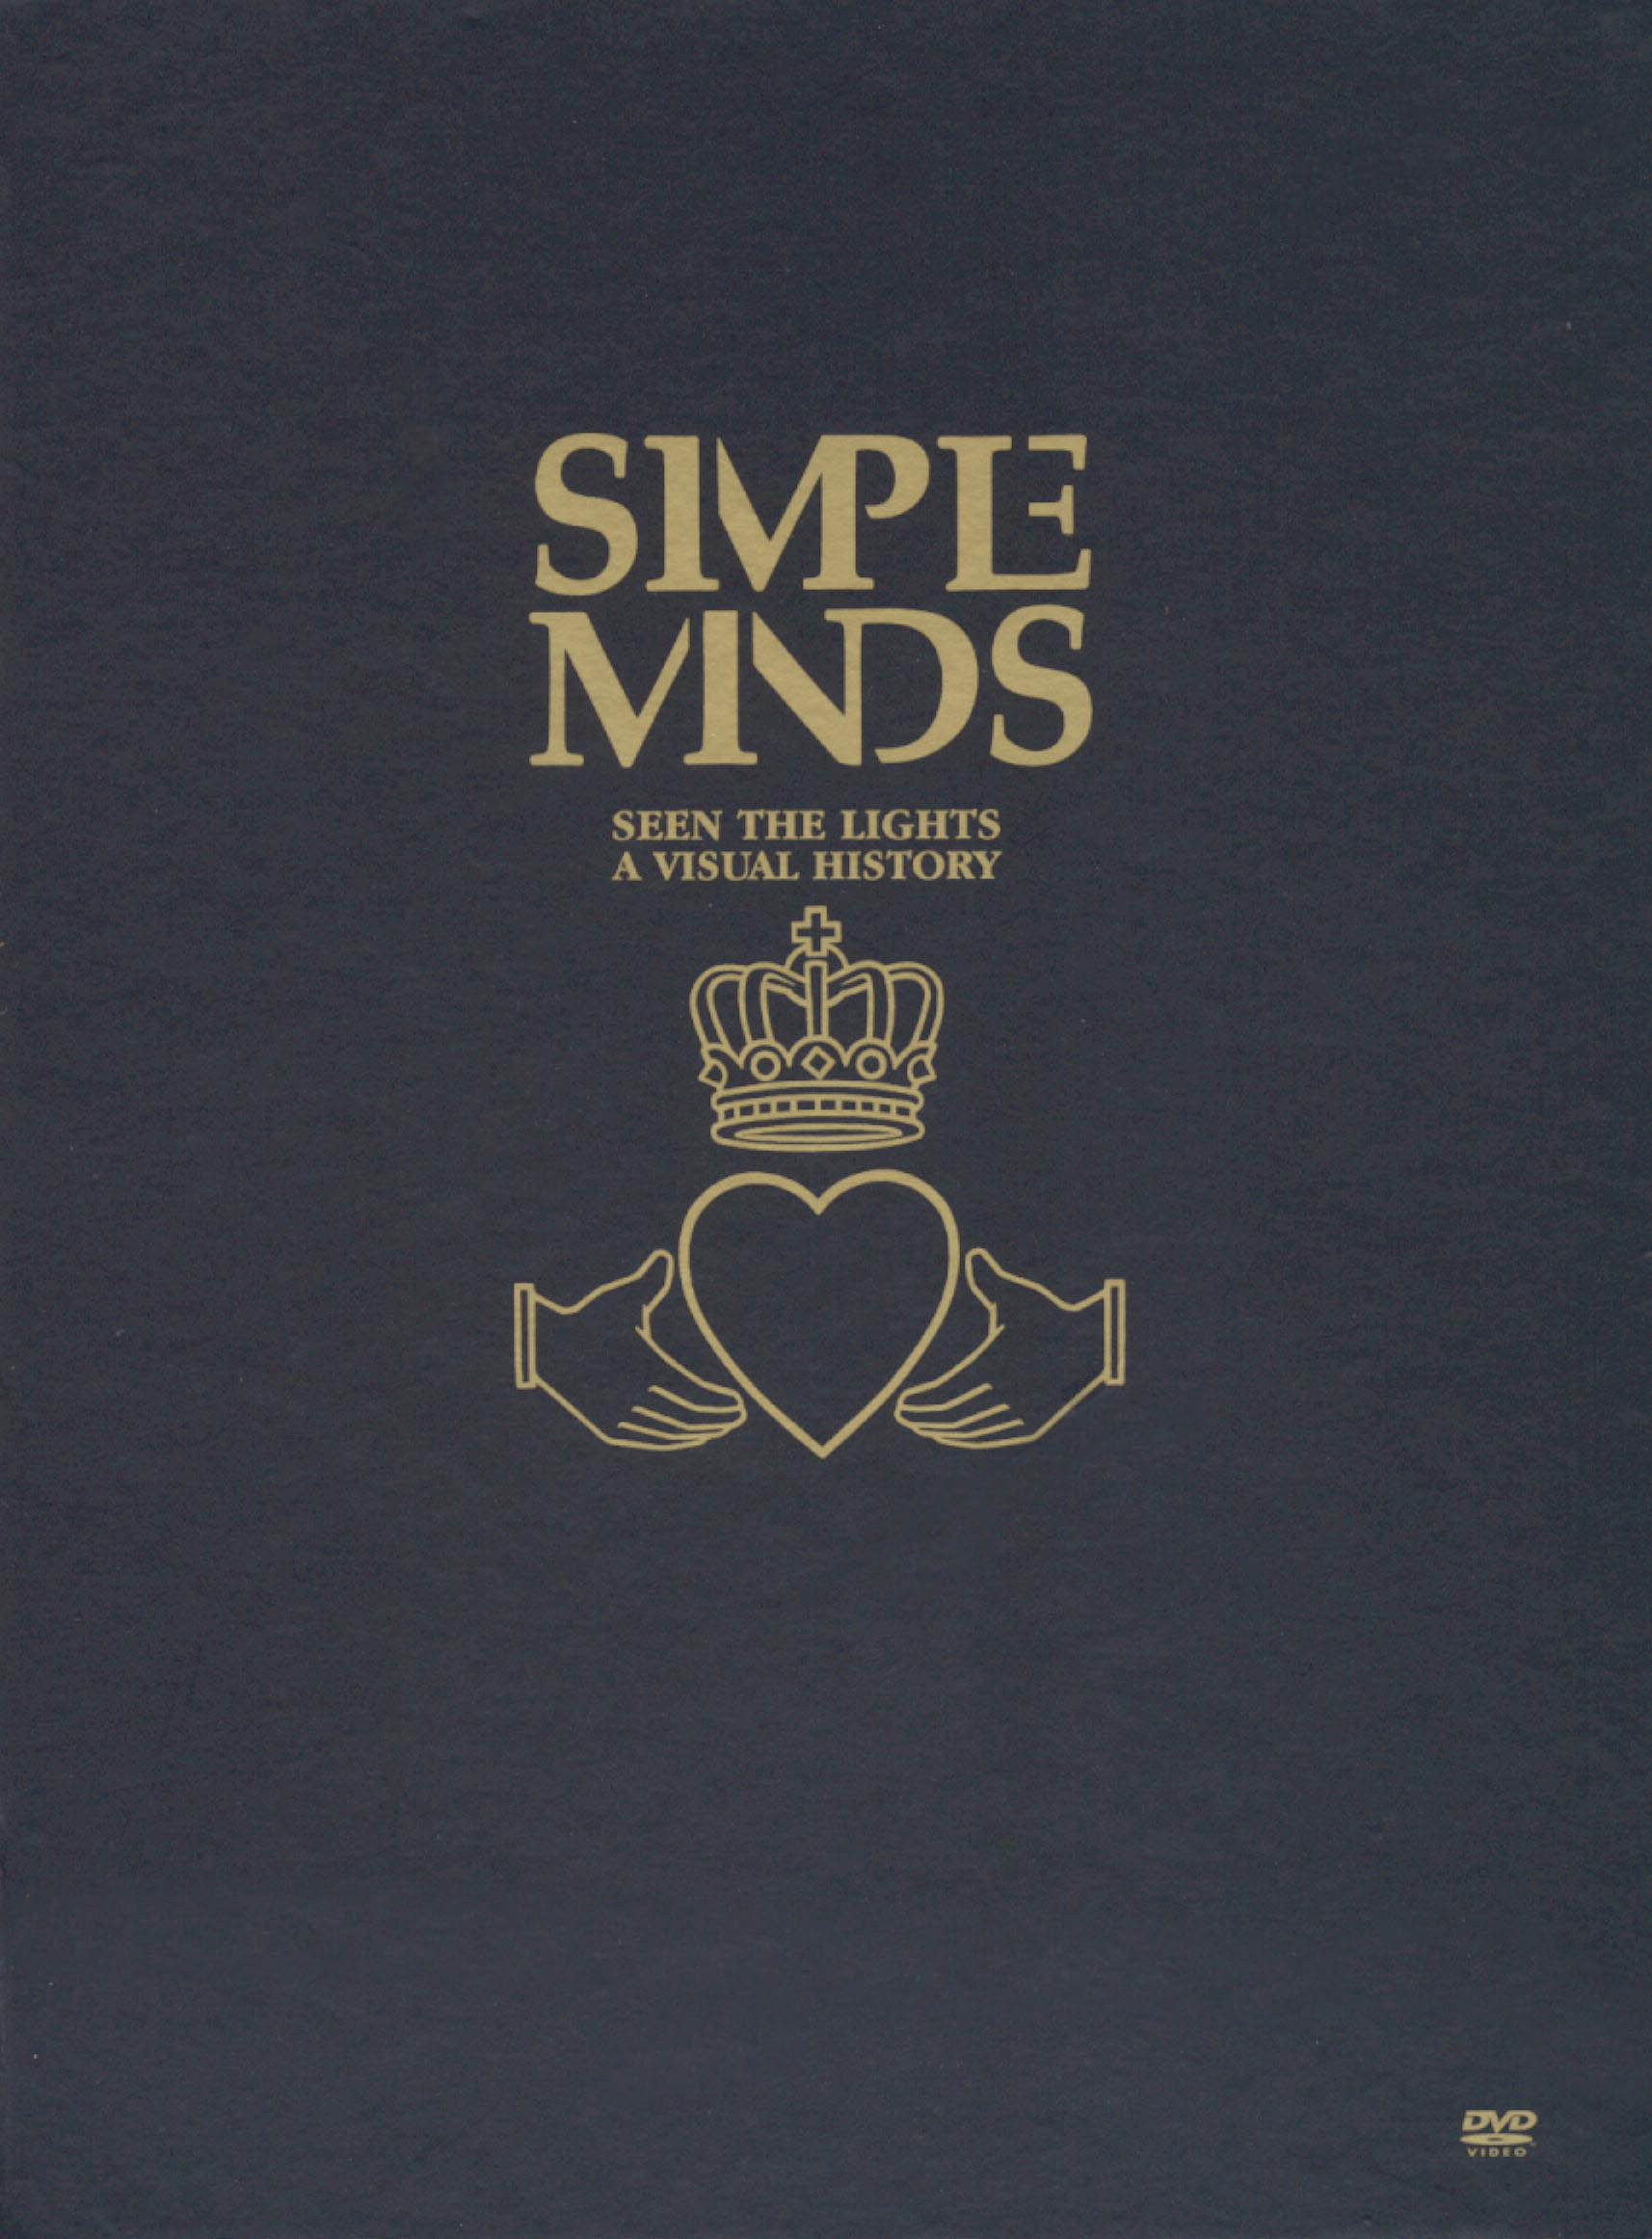 Simple Minds: Seen the Lights - A Visual History